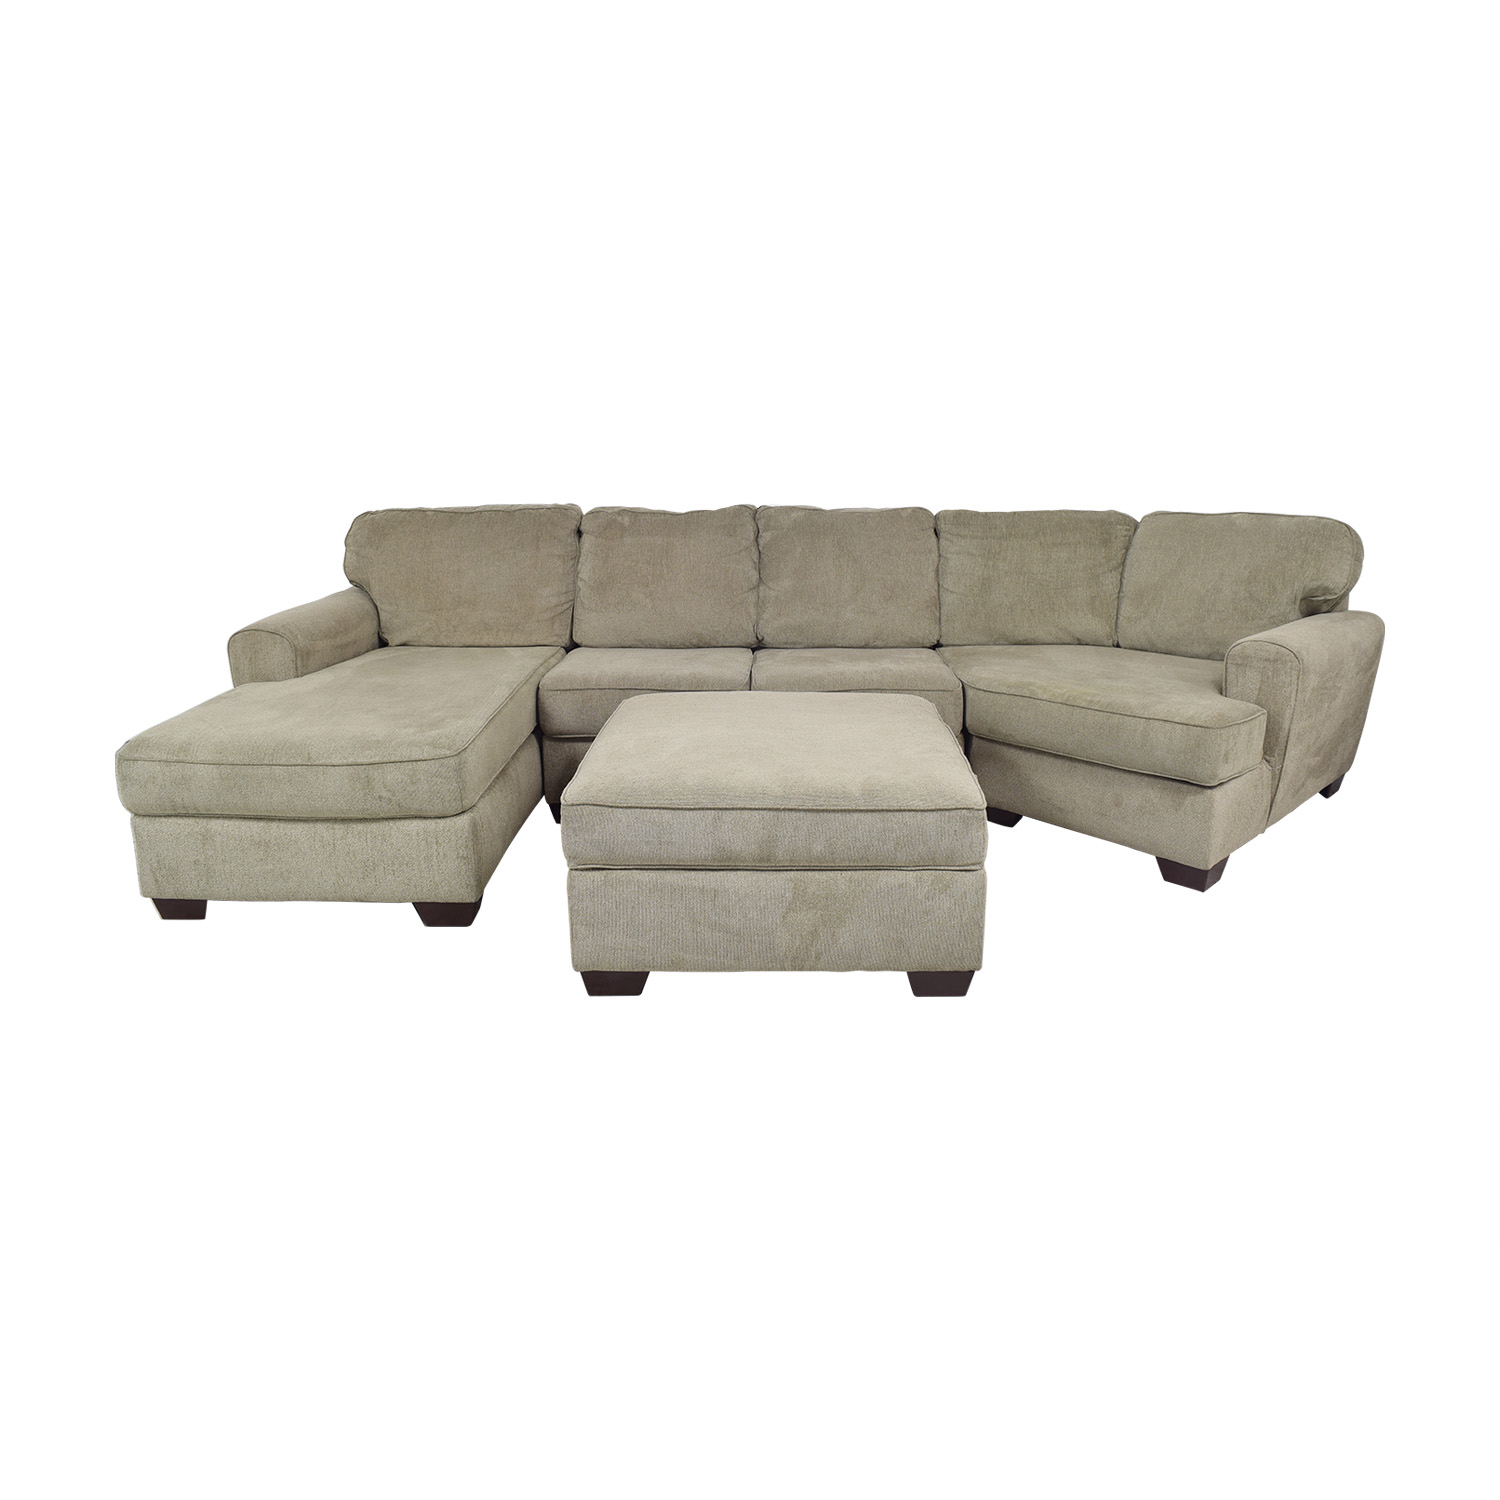 Ashley Furniture Ashley Furniture Patola Park Sectional with Chaise and Cuddler on sale